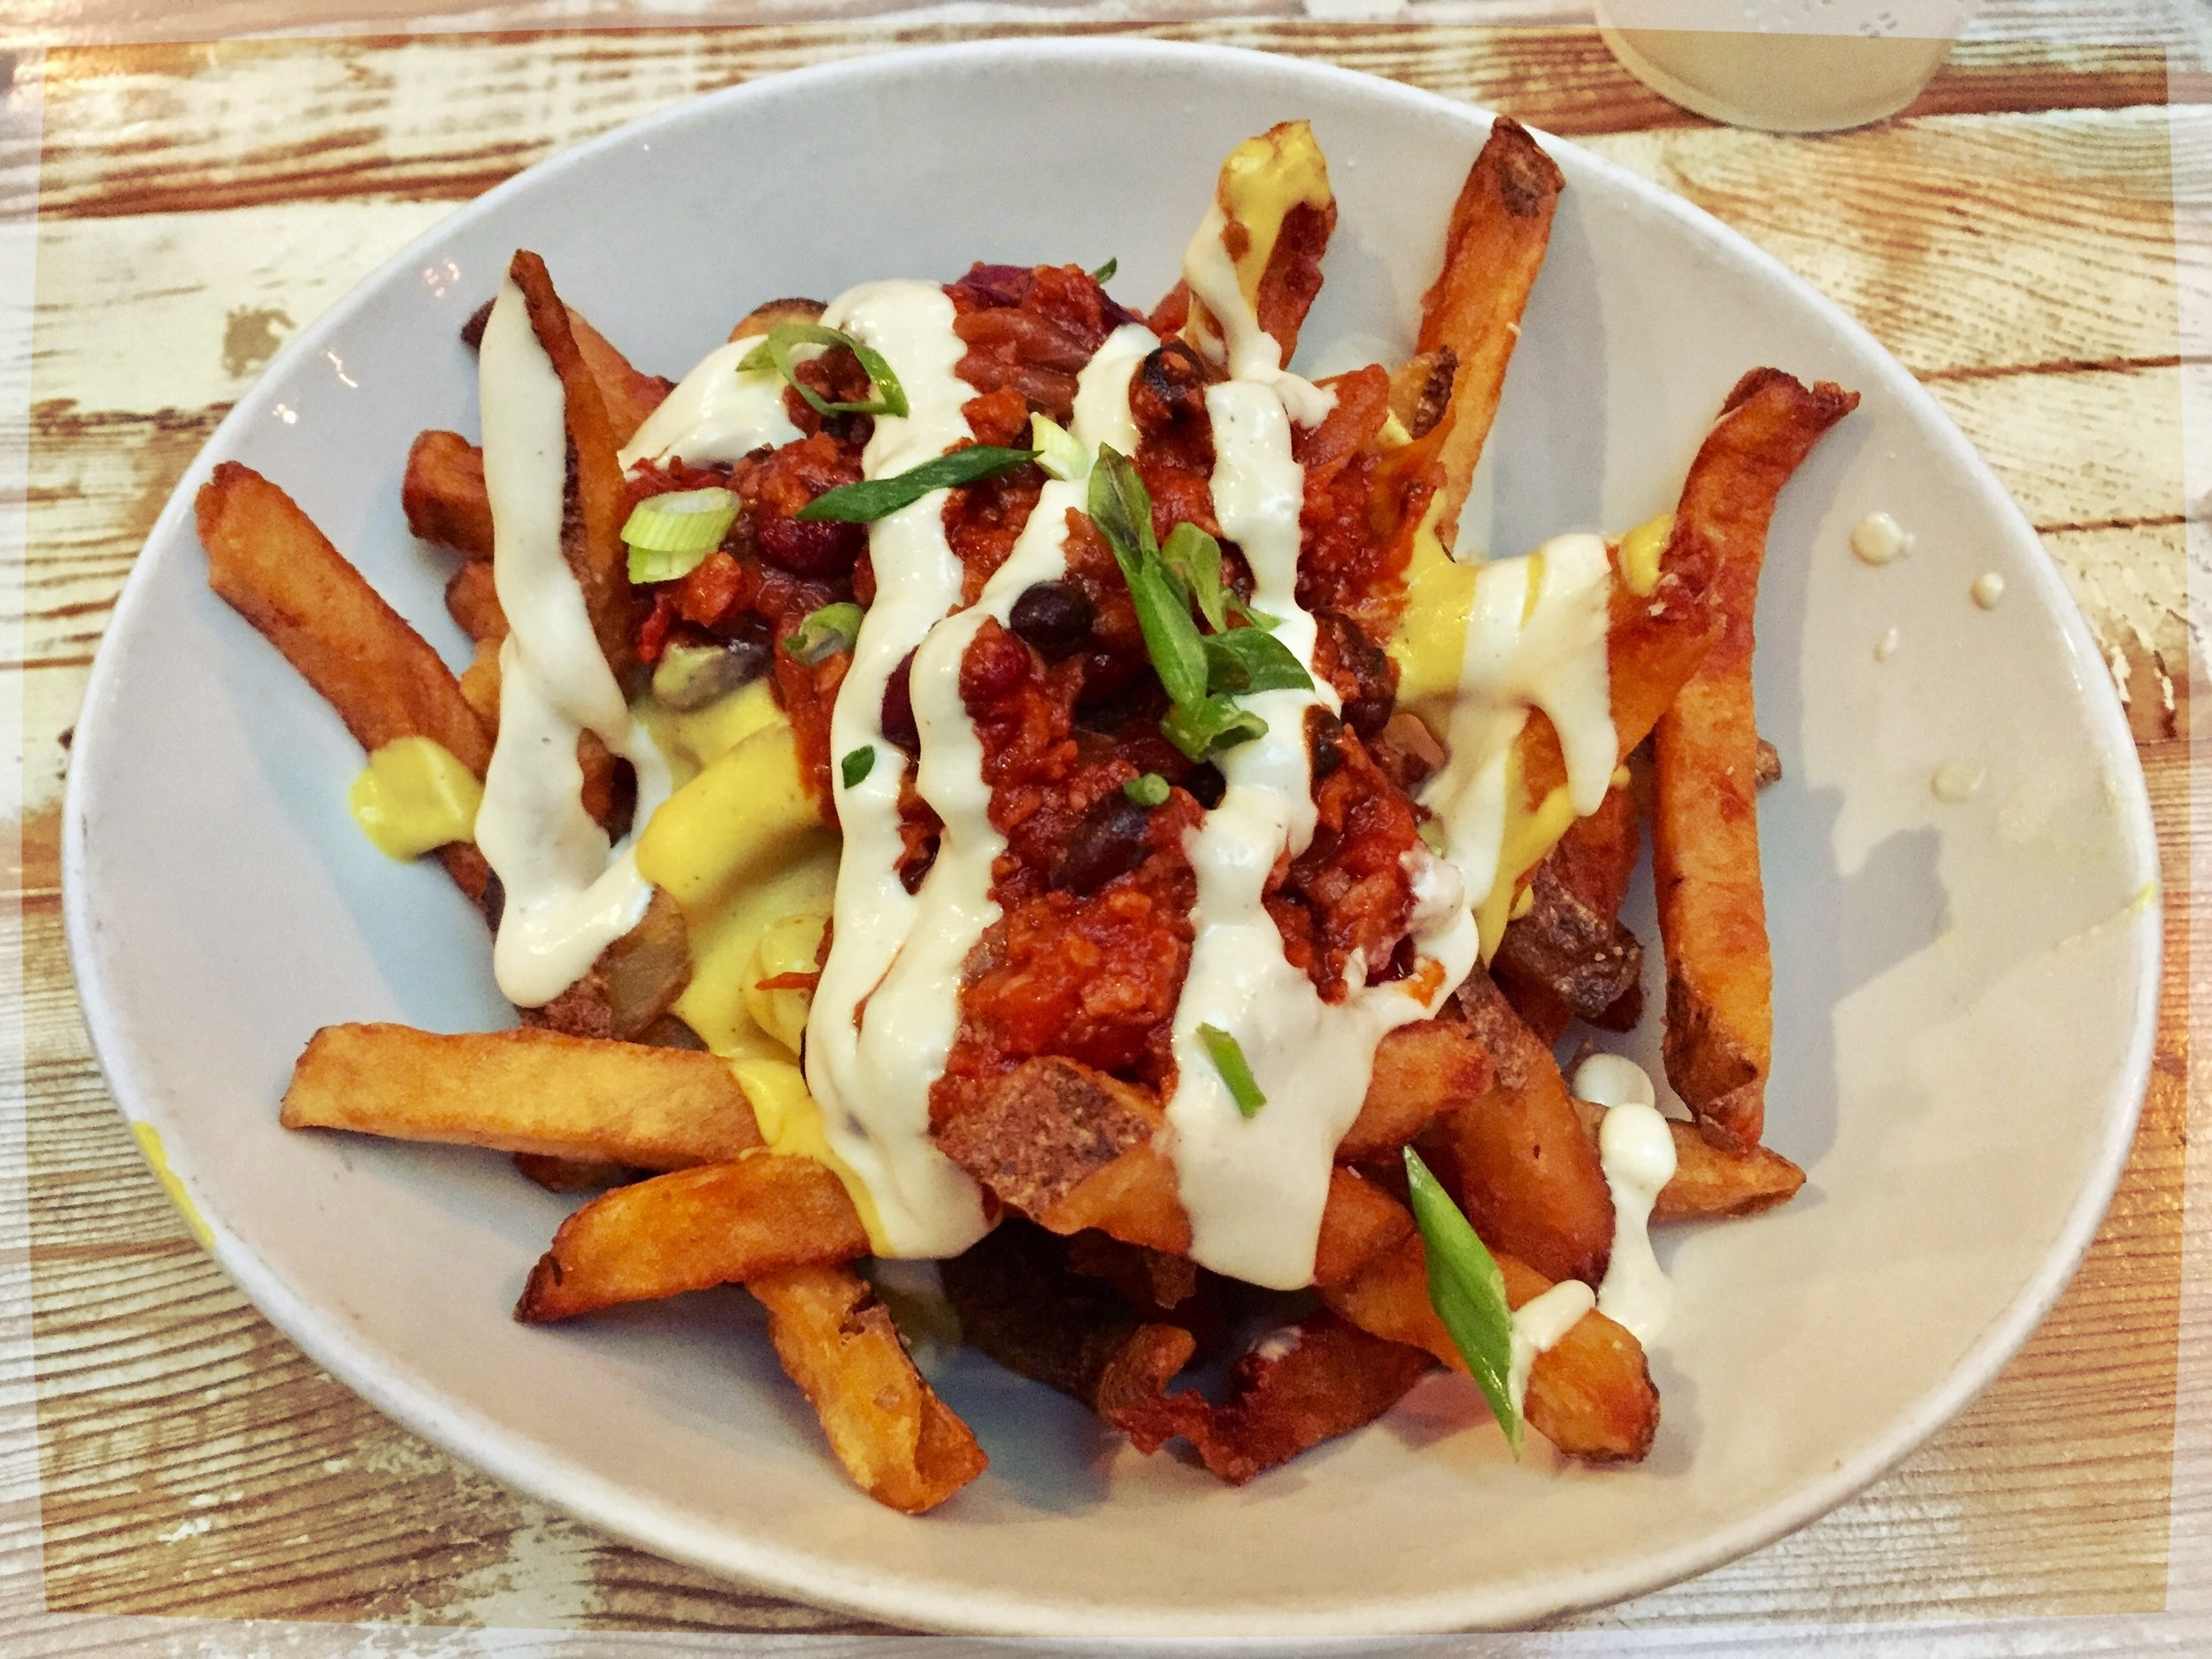 Vegan chili cheese fries from MeeT in Vancouver, BC